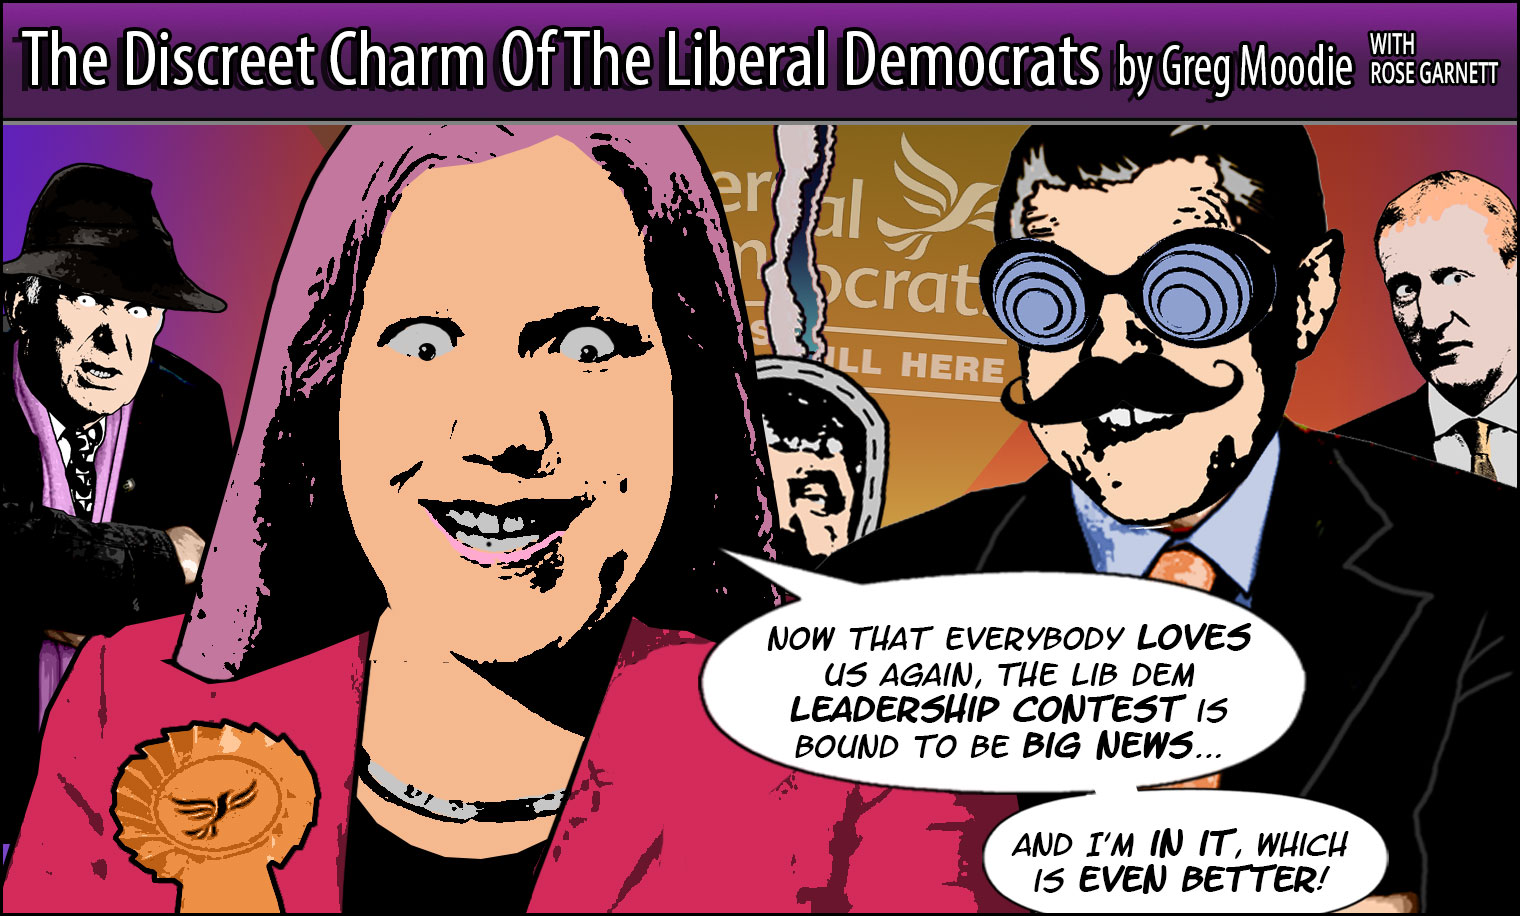 The Discreet Charm Of The Liberal Democrats